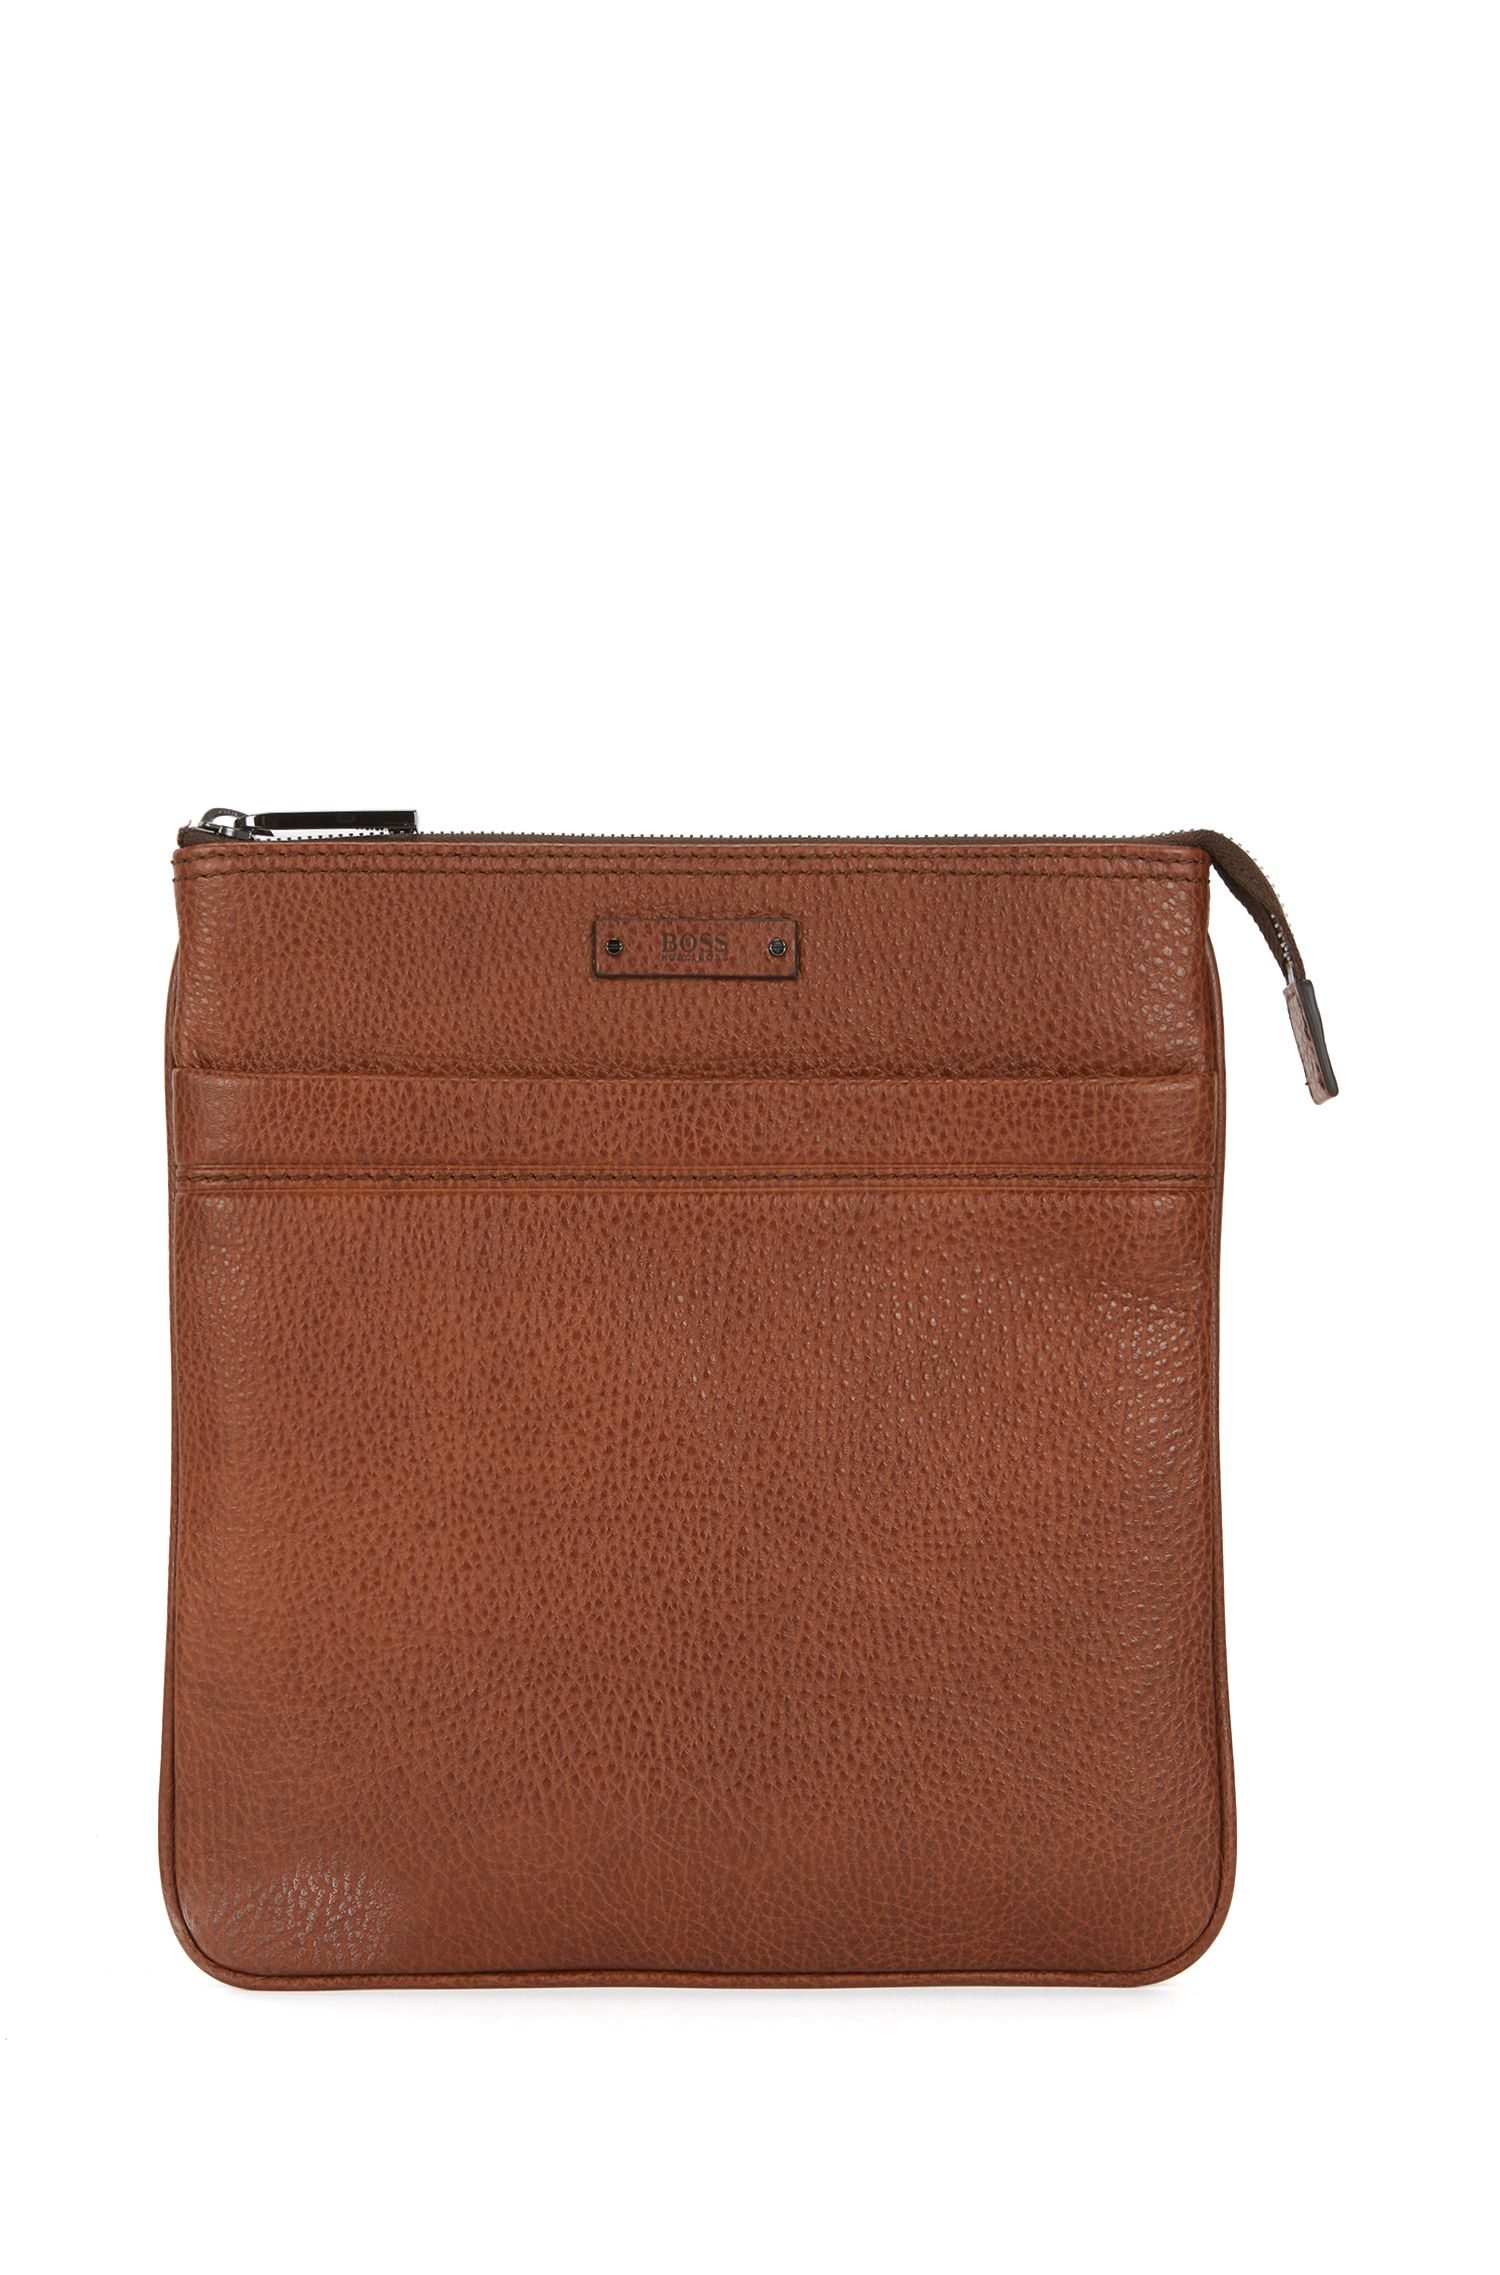 Cross-body envelope bag in grainy Italian leather